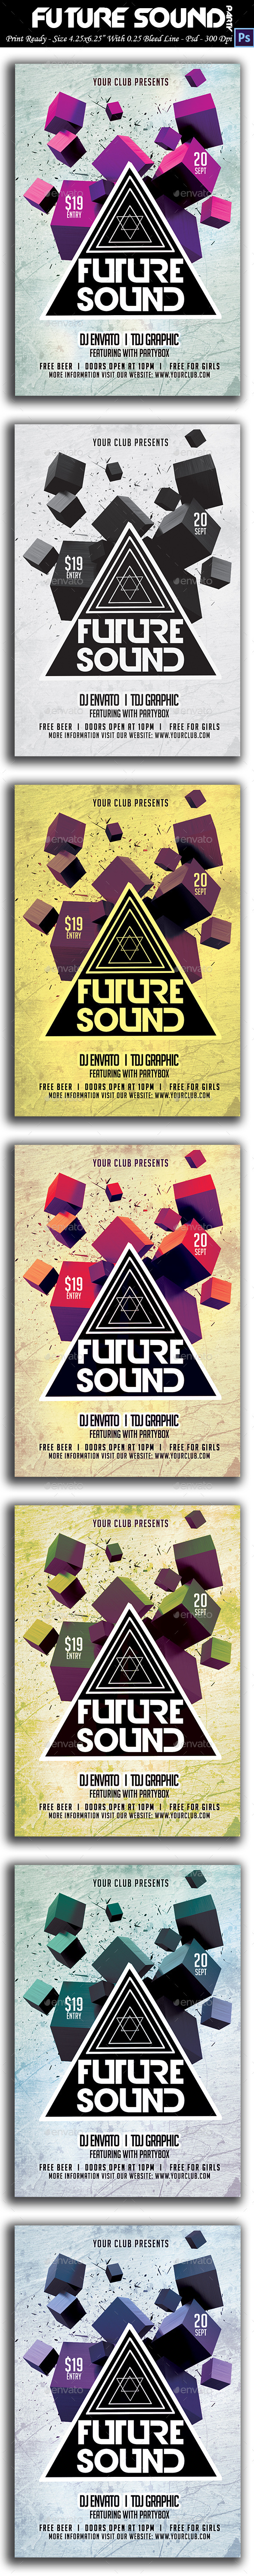 GraphicRiver Future Sound Flyer 9062252